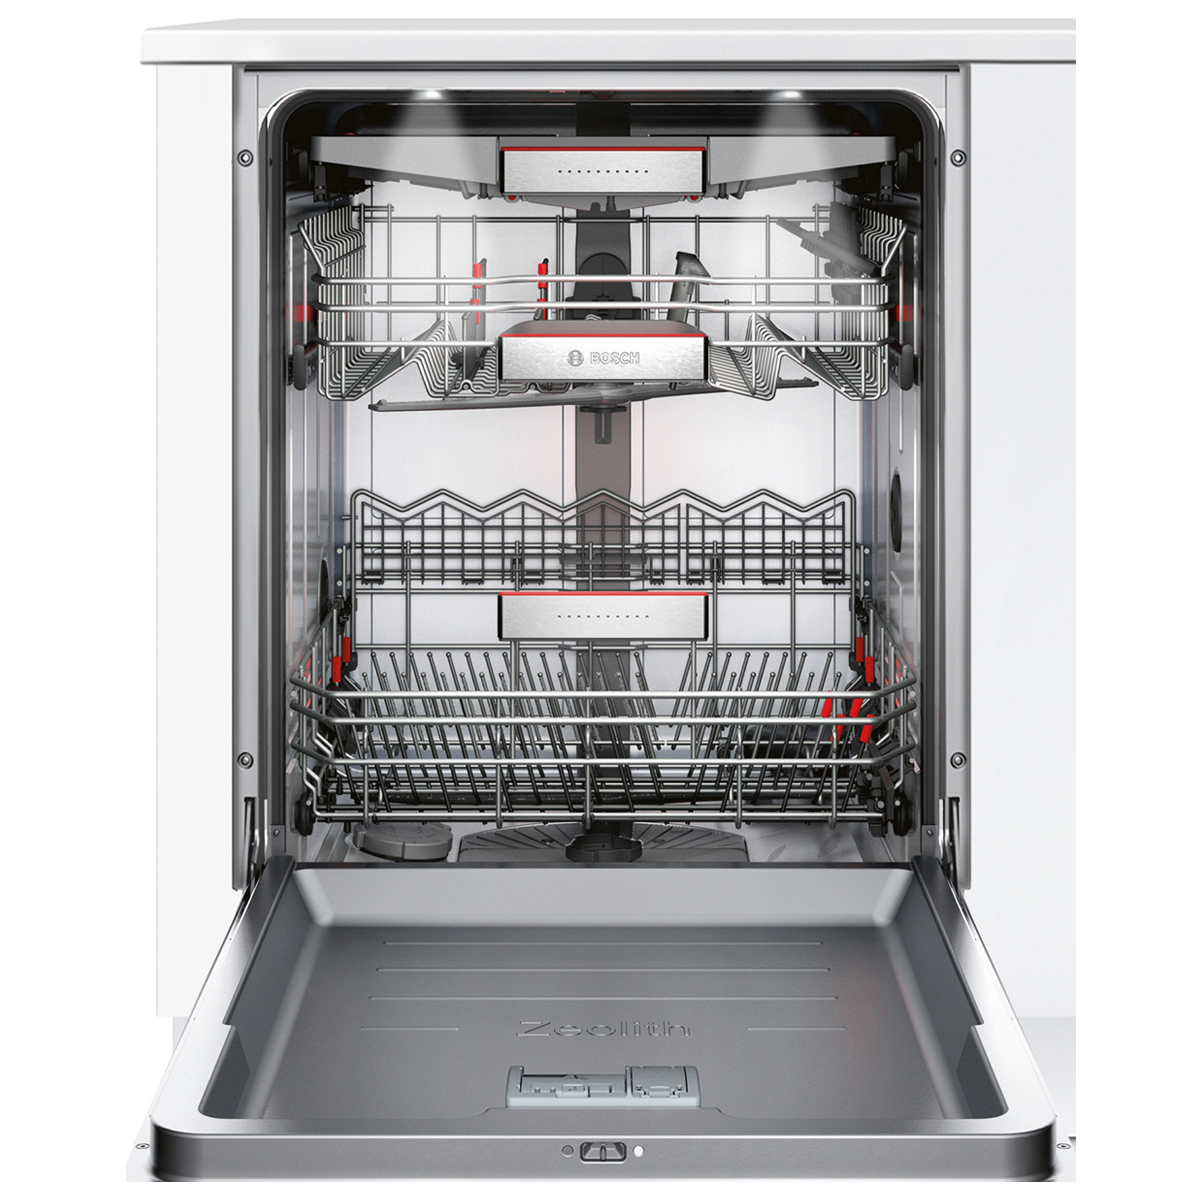 bosch smu88ts03a serie 8 underbench dishwasher home. Black Bedroom Furniture Sets. Home Design Ideas